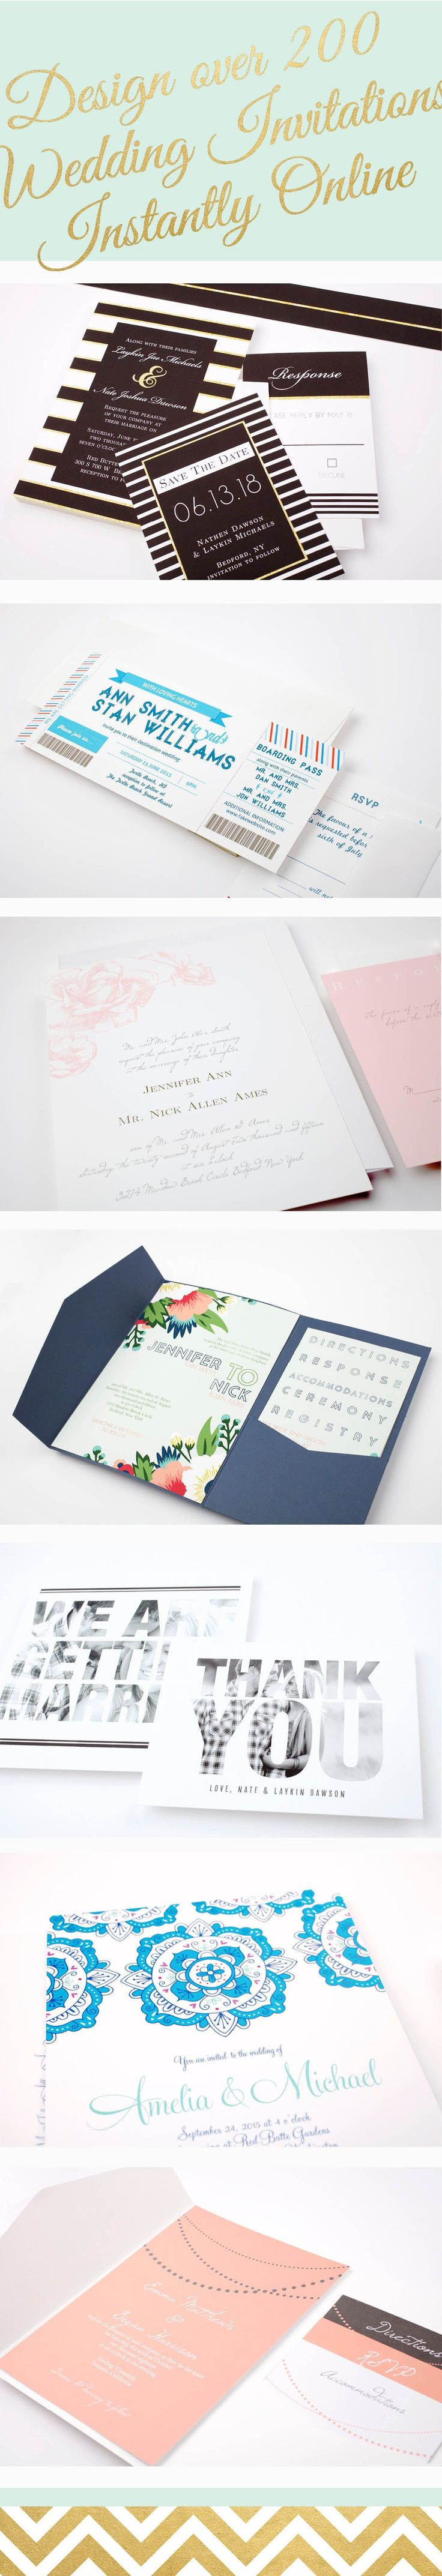 avery address labels wedding invitations%0A Full customizable wedding invitation sets in over     different colors